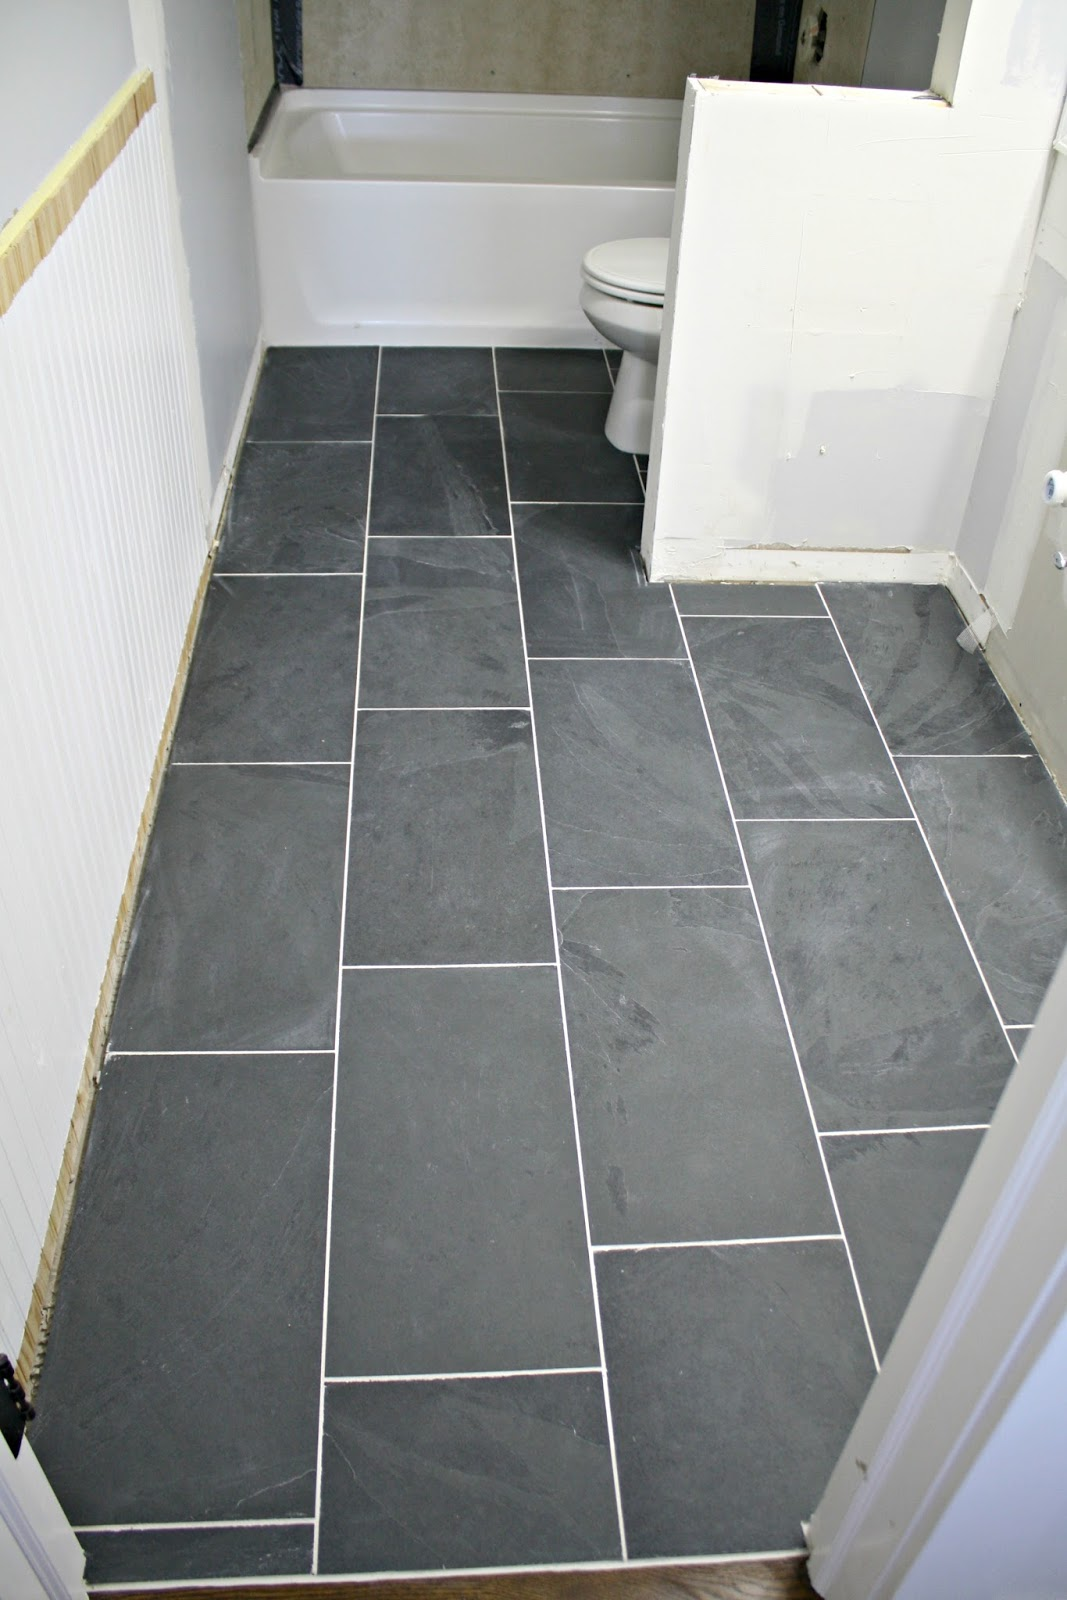 How to tile a bathroom floor (it's done!) | WHITE HOMES